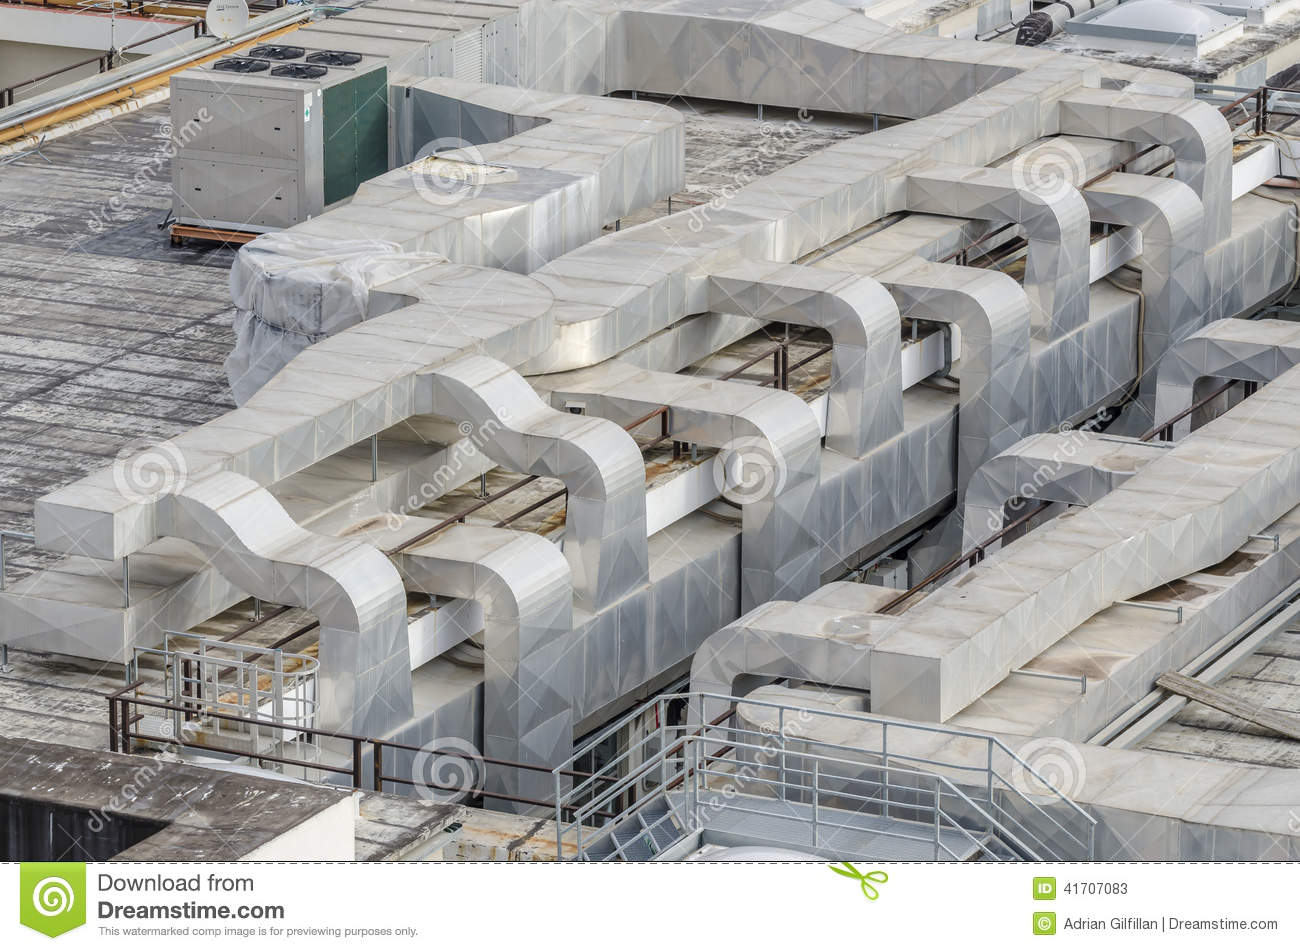 #6C5F4D Ductwork Stock Photo Image: 41707083 Highest Rated 13266 No Duct Air Conditioning img with 1300x951 px on helpvideos.info - Air Conditioners, Air Coolers and more